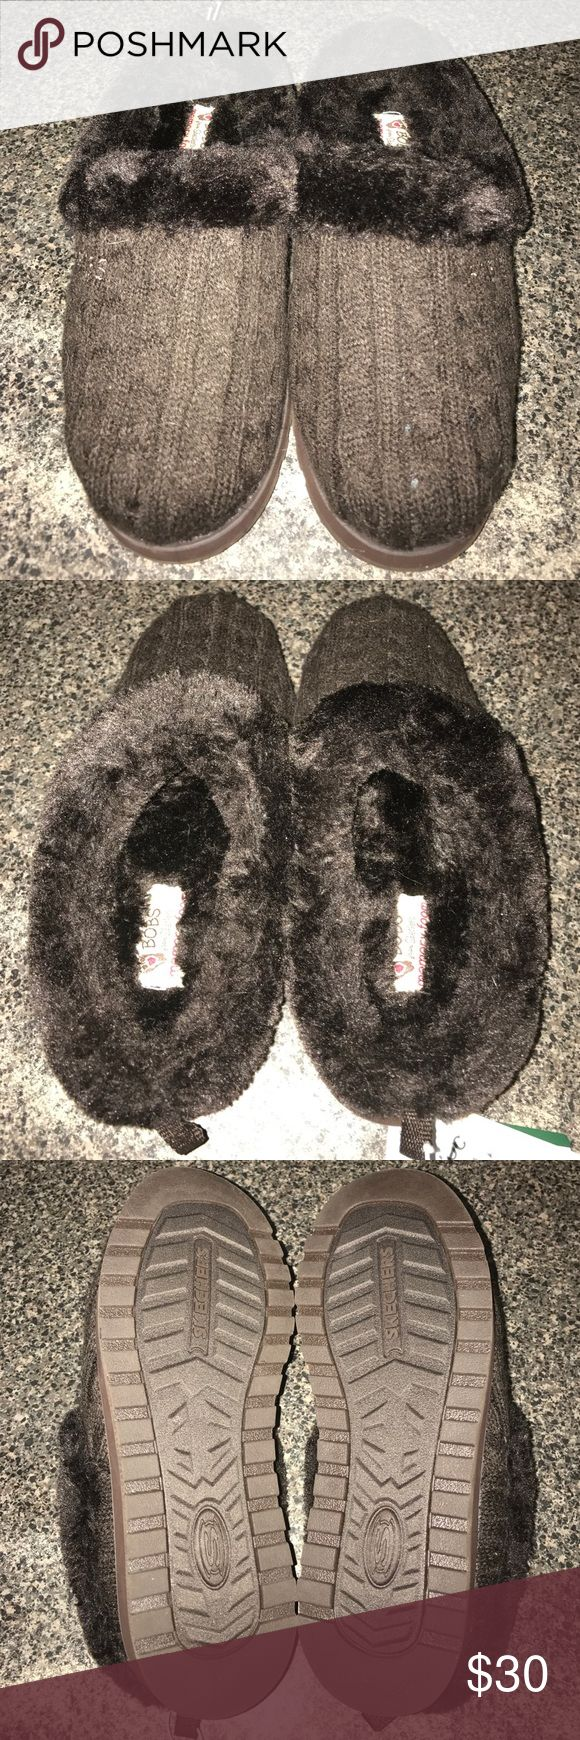 Cold feet? I got the answer! BOBS from Sketchers Keepsakes Delight Slipper in chocolate brown. Padded footbed with faux fur insole and trim. Very comfy to keep the tootsies warm. Sketchers Shoes Mules & Clogs